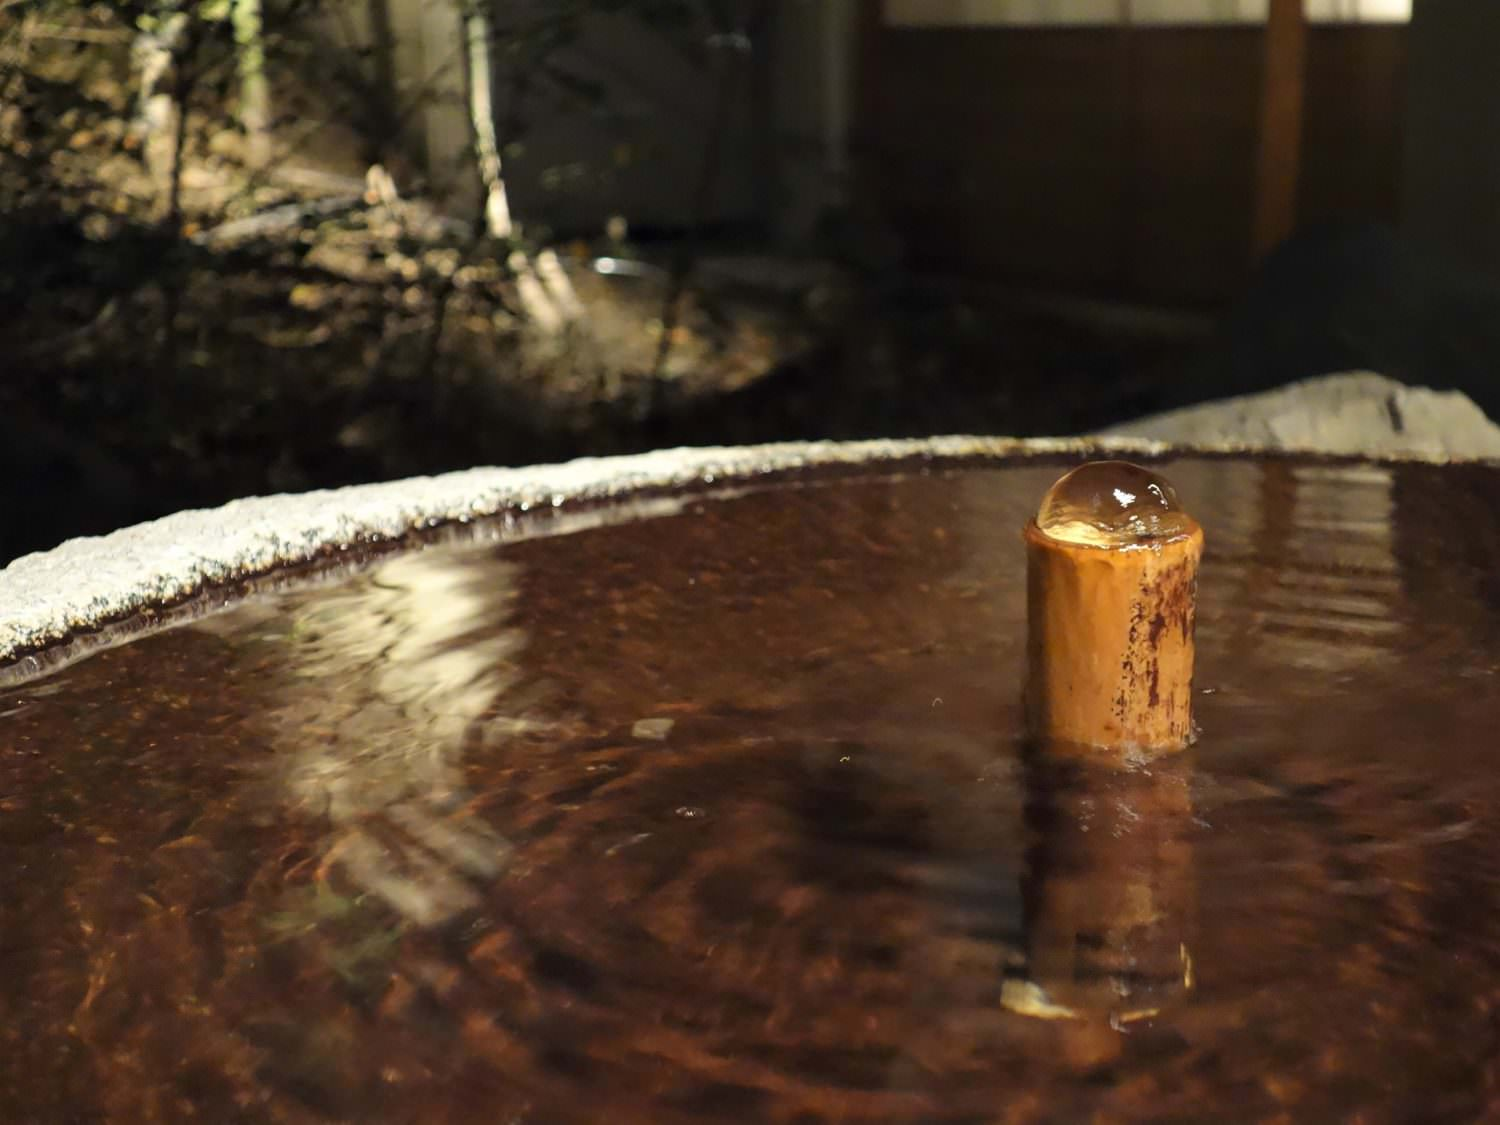 A little fountain where hot water is coming out